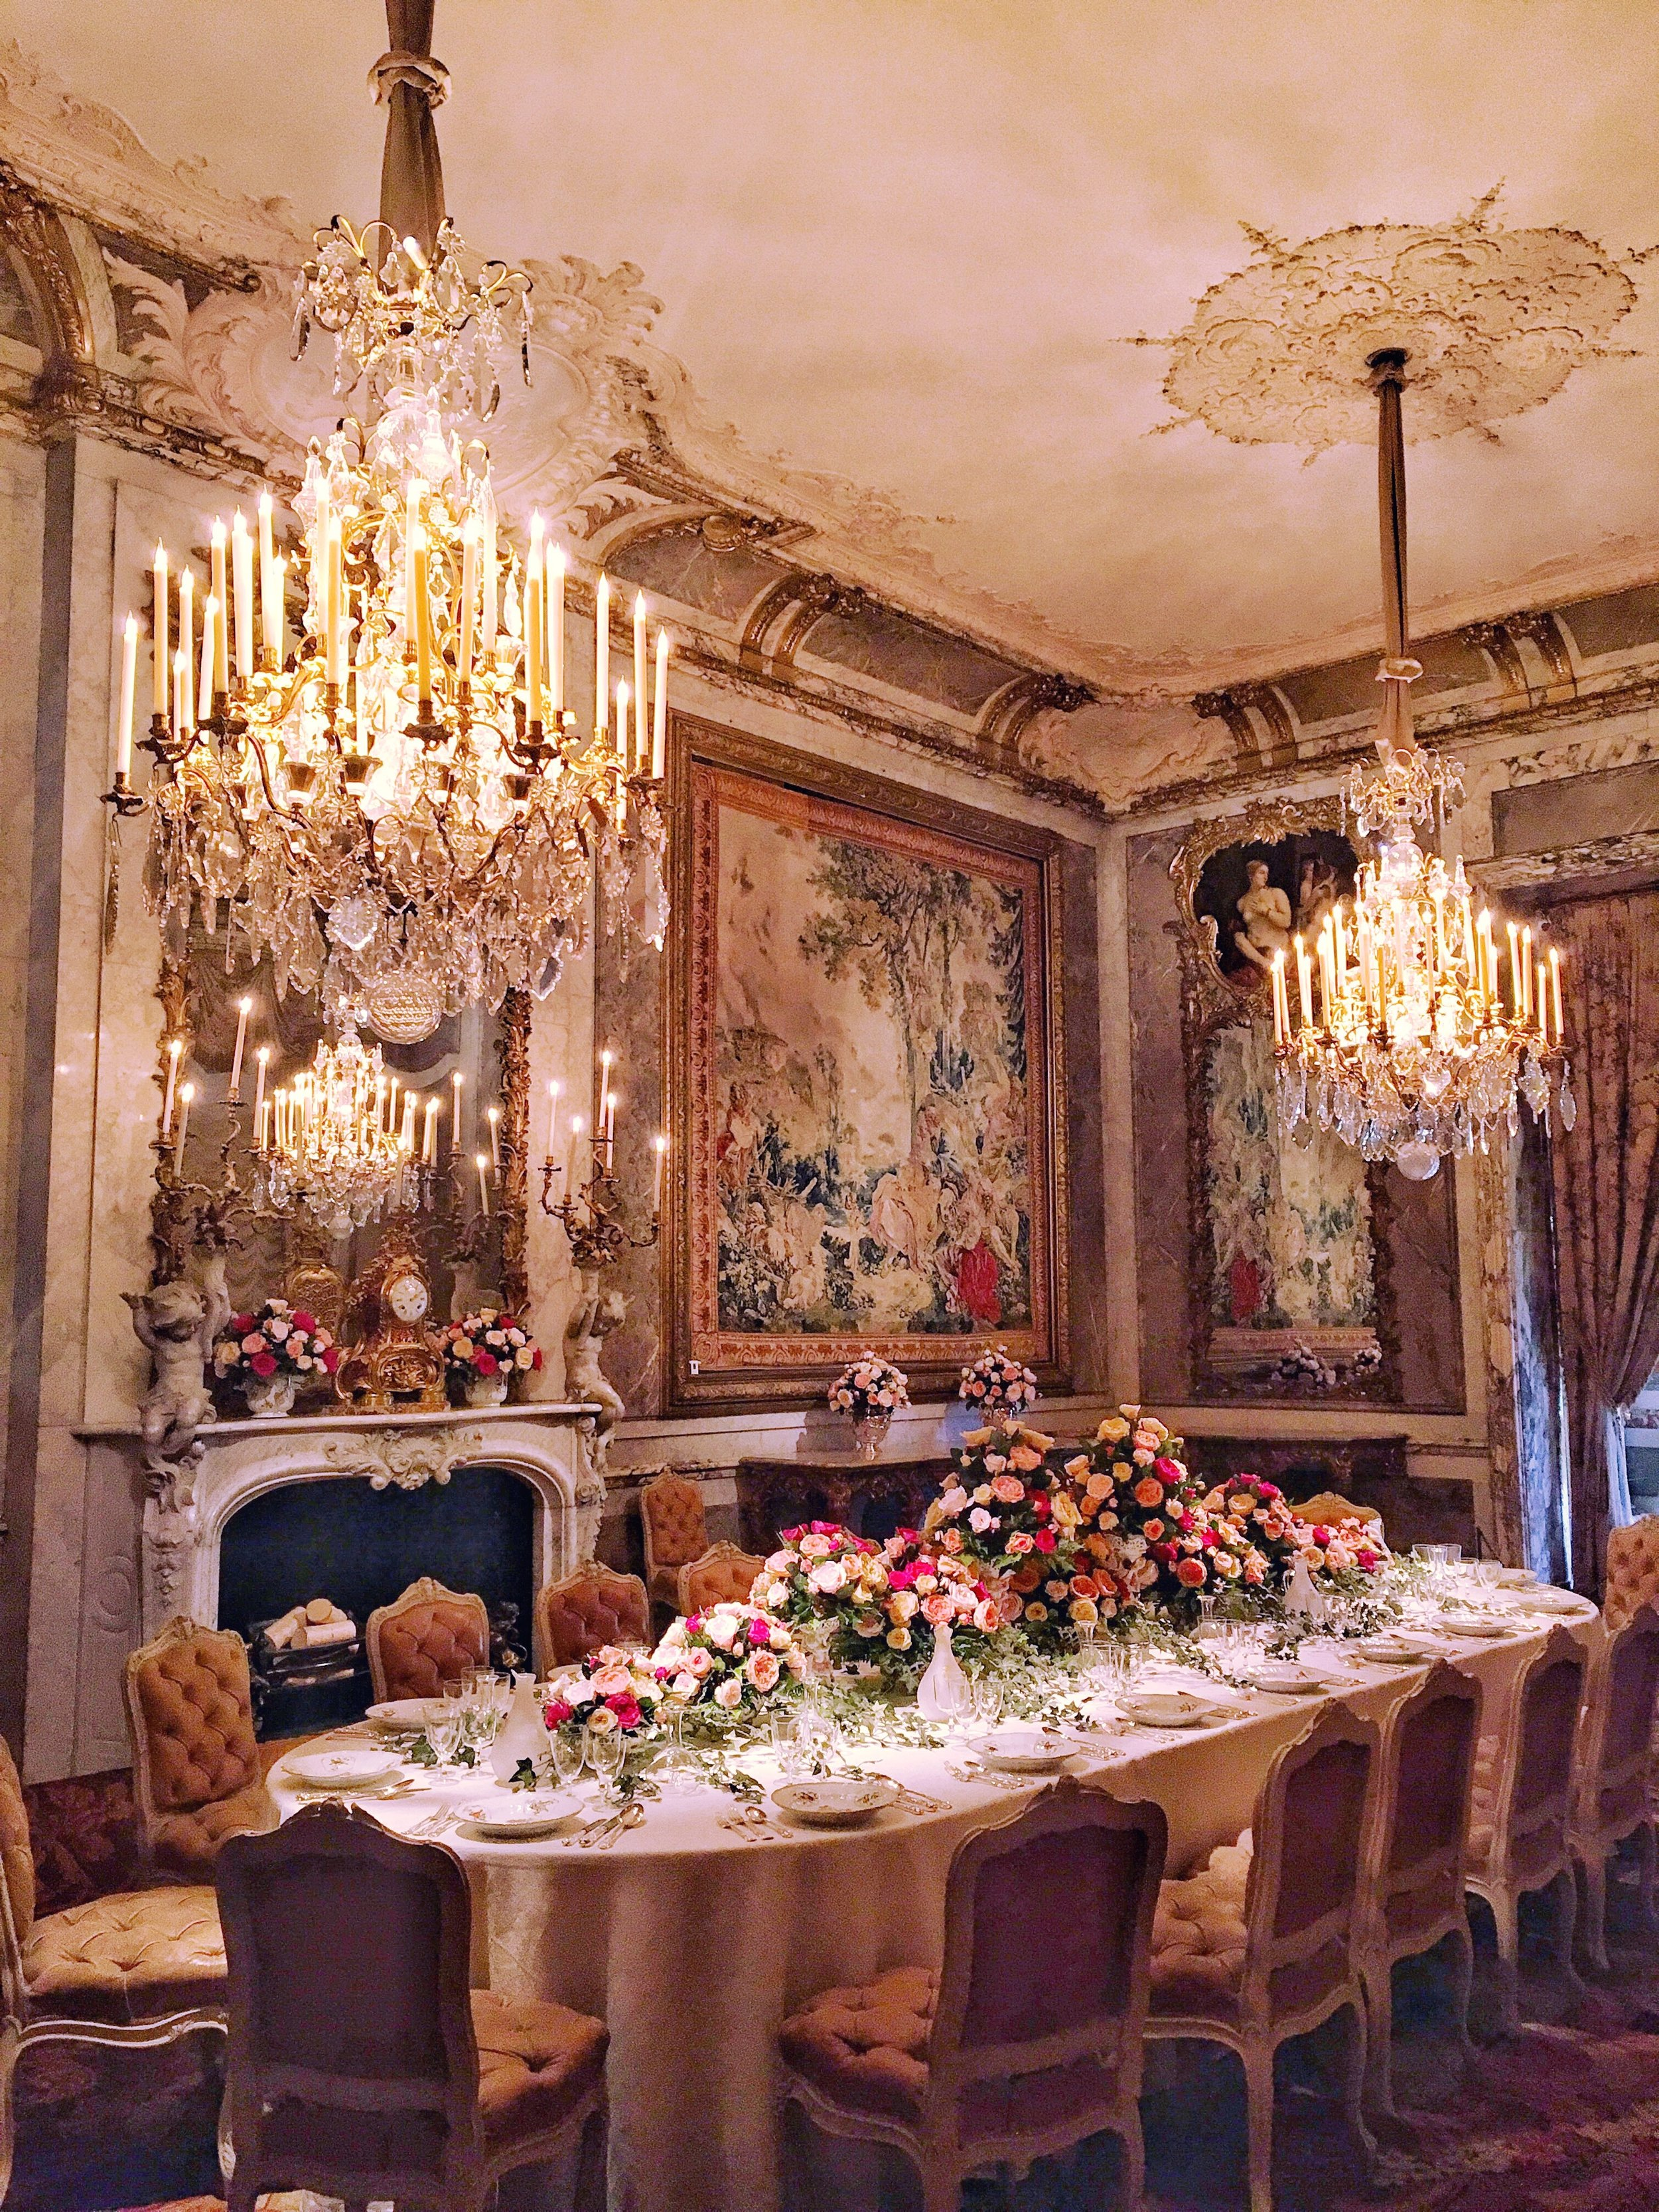 The dining room, with table laid as it would've been for a house party in the 1890s. © Eileen Hsieh / Follow That Bug